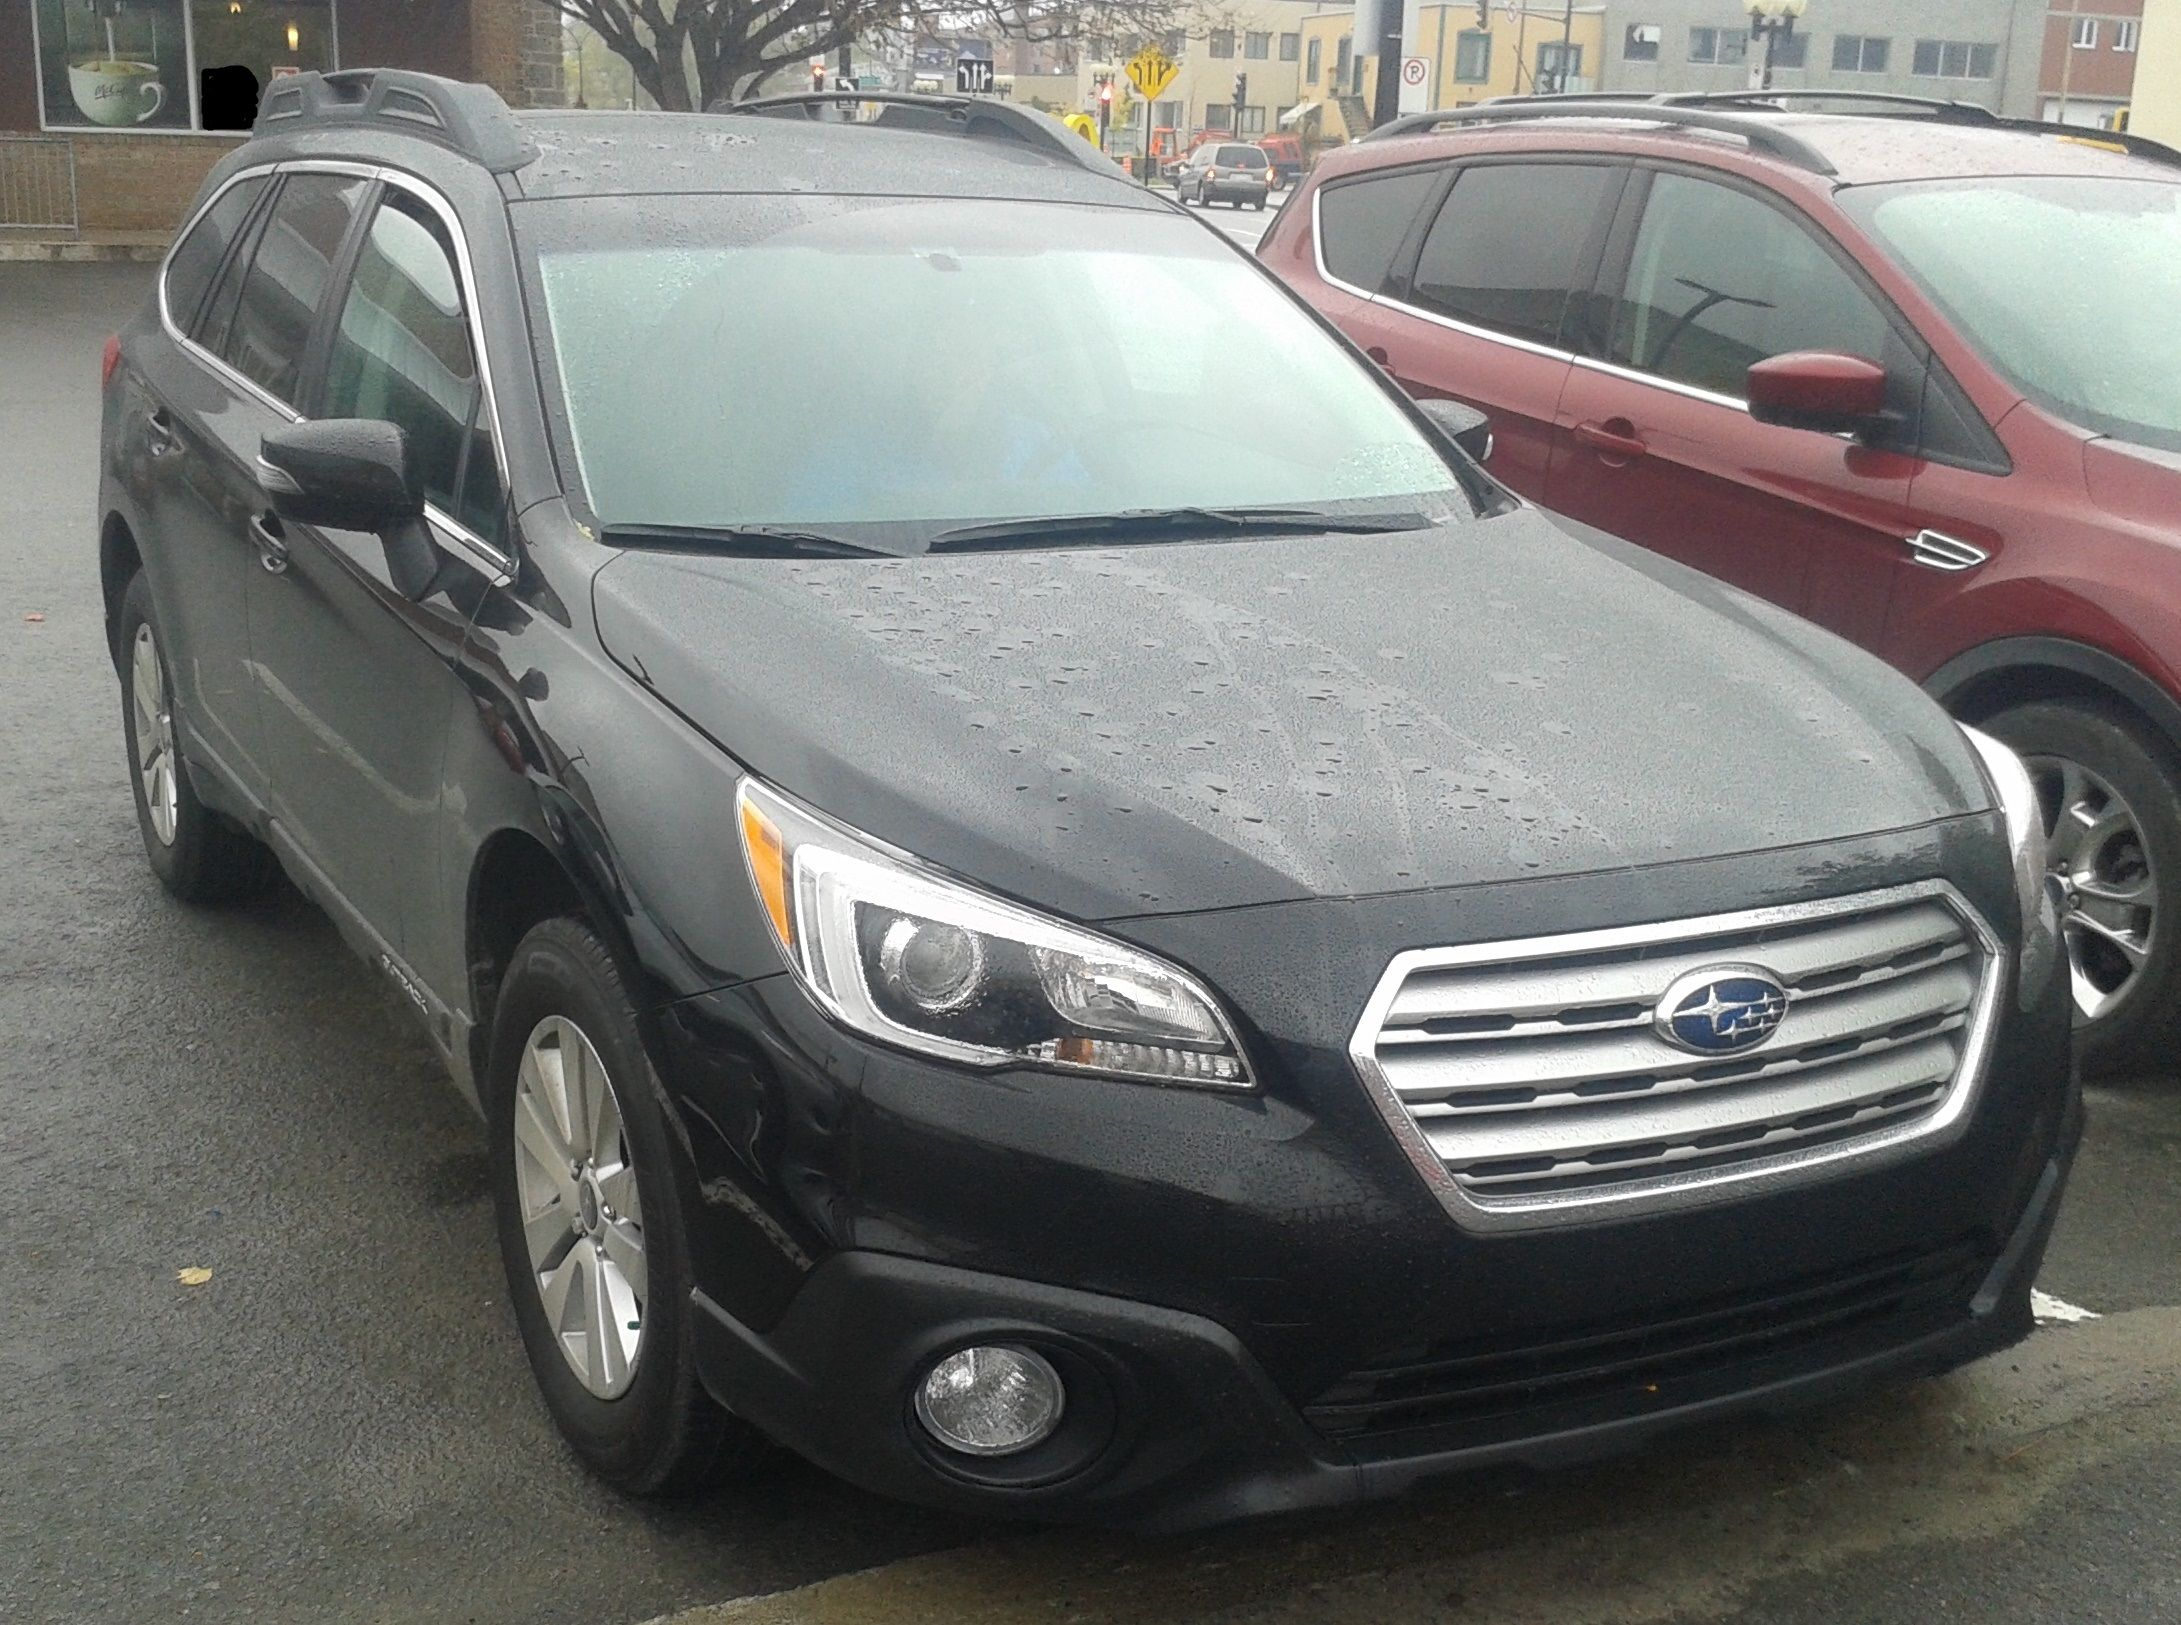 Subaru Outback Towing Capacity Http Www Cars